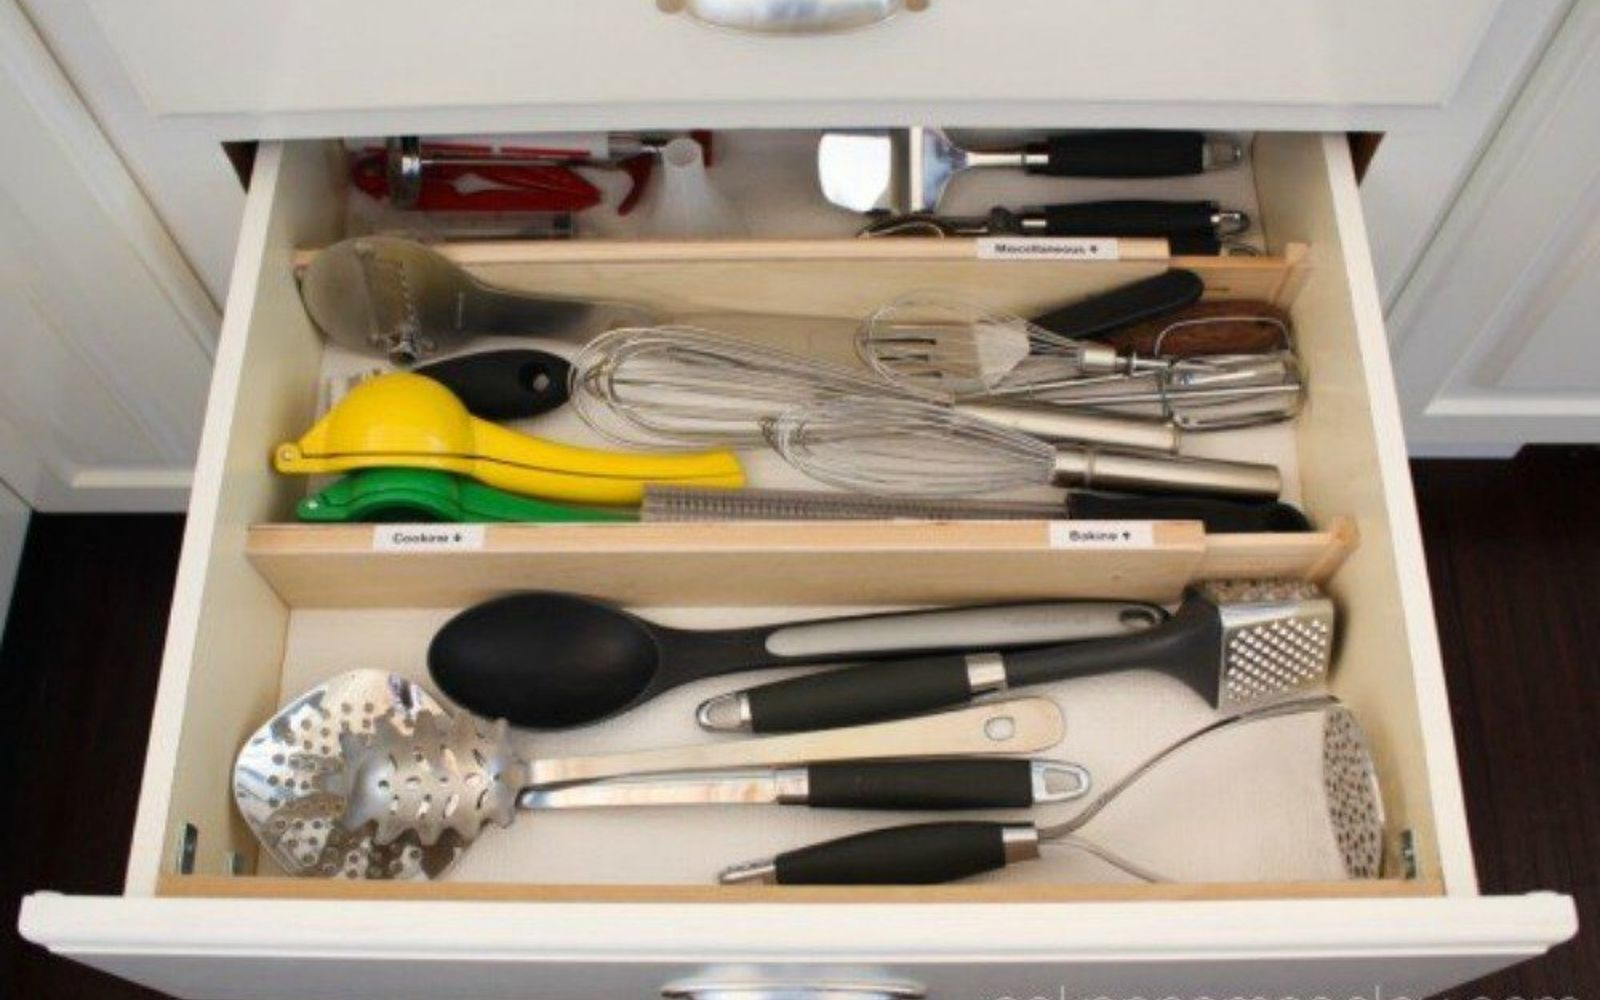 s 13 storage ideas that will instantly declutter your kitchen drawers, kitchen design, organizing, storage ideas, Separate everything with drawer dividers